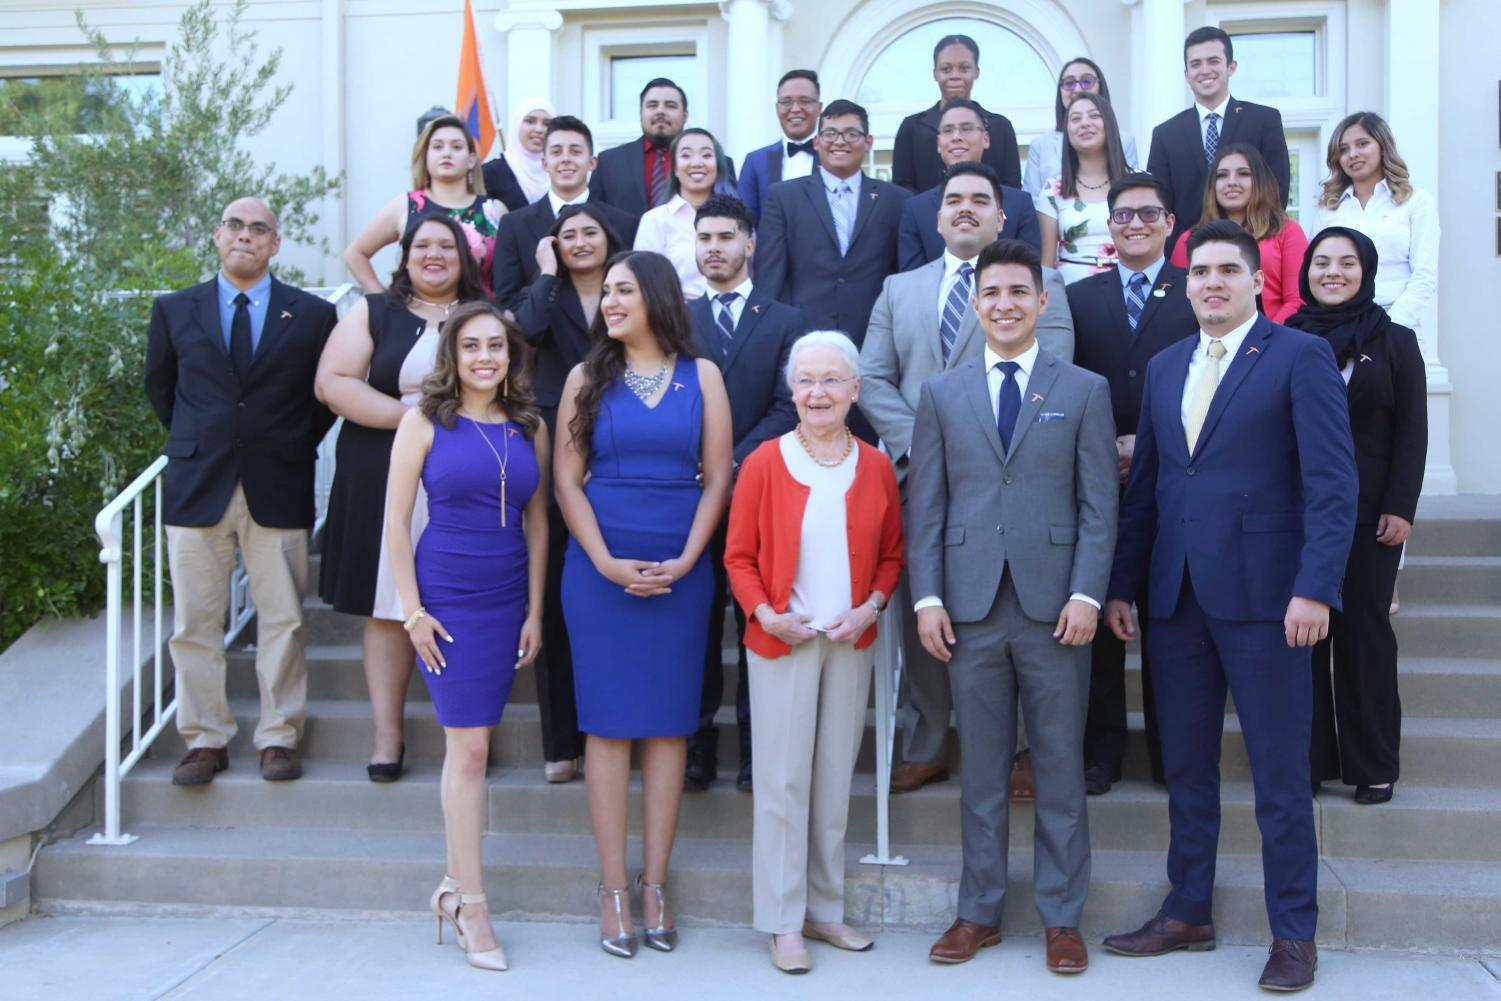 President+Dr.+Diana++Natalicio+poses+with+the+newly+elected+senators%2C+president%2C+vice-presidents+and+executive+assistant+infornt+of+the+Hoover+House+on+Wednesday+May+23.